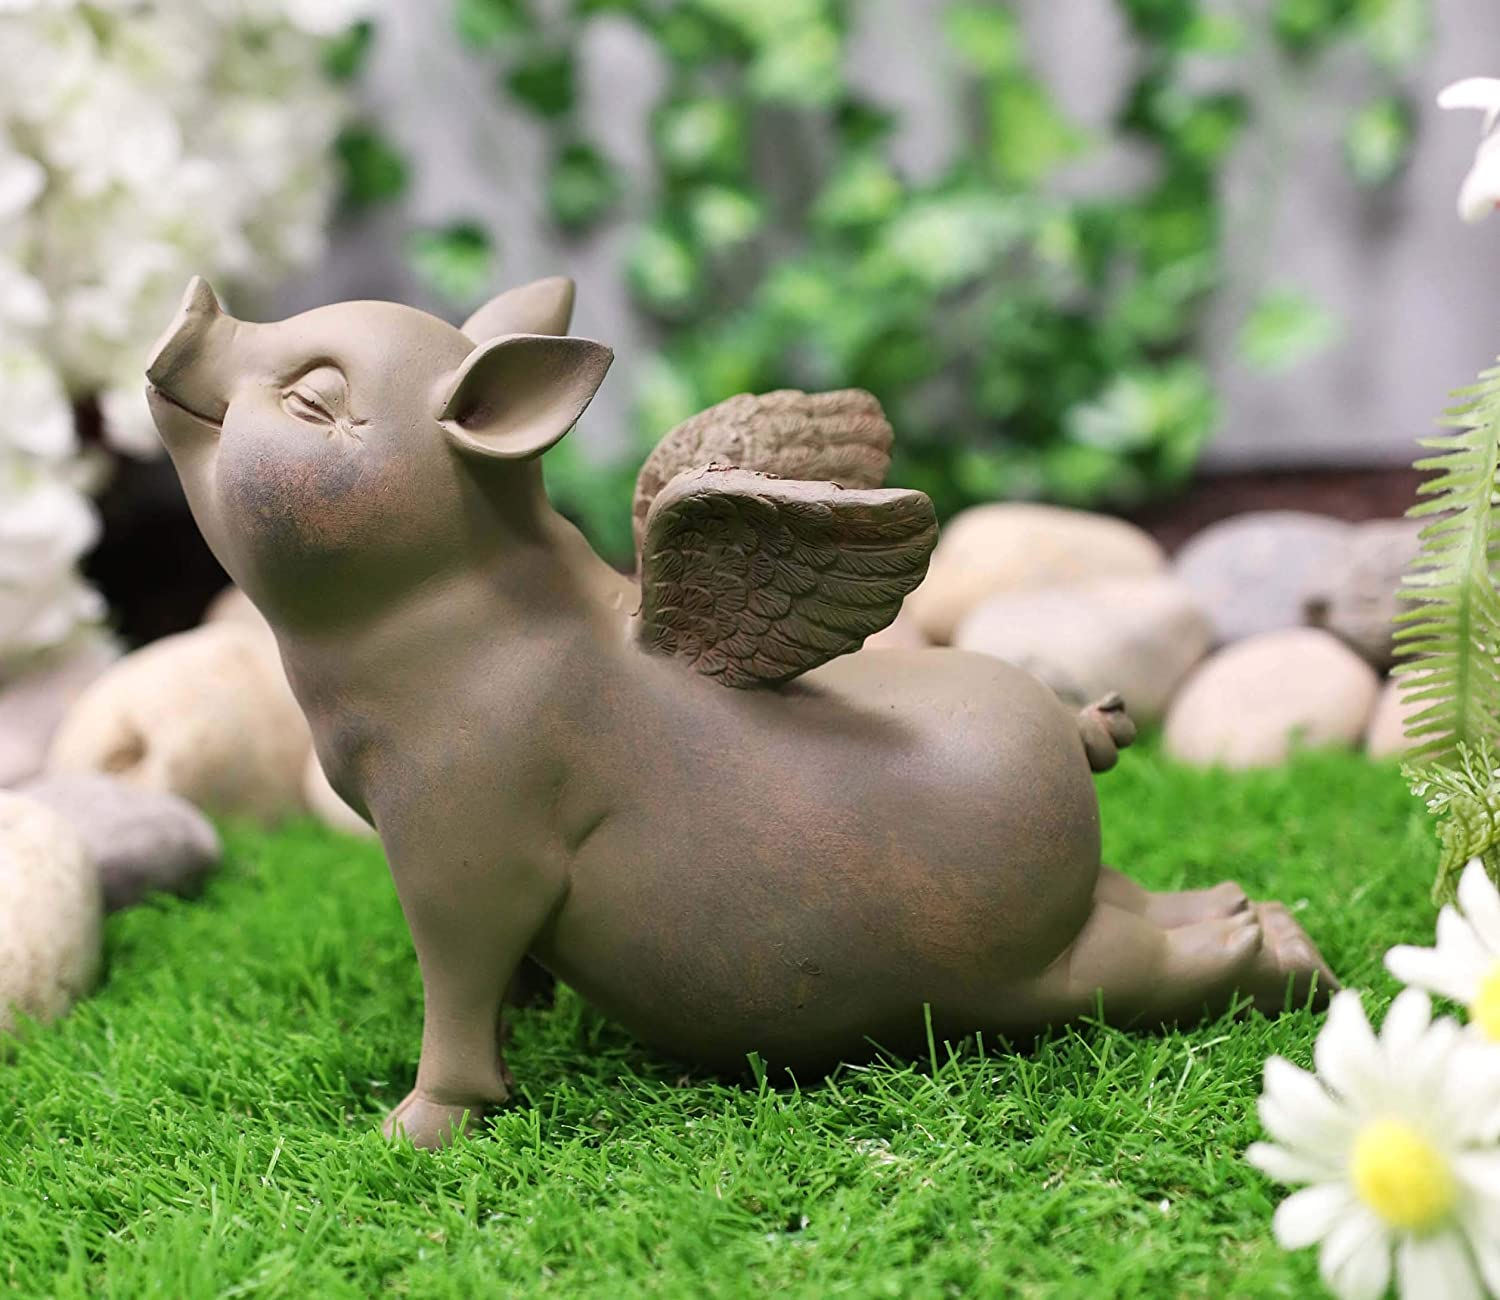 Ebros Peaceful Zen Yoga Flying Pig Hog Heavens Statue Rustic Country Piggy Piglet Porcine Pigs Fairy Garden Collectible Figurine (Cobra Stretch Pose)